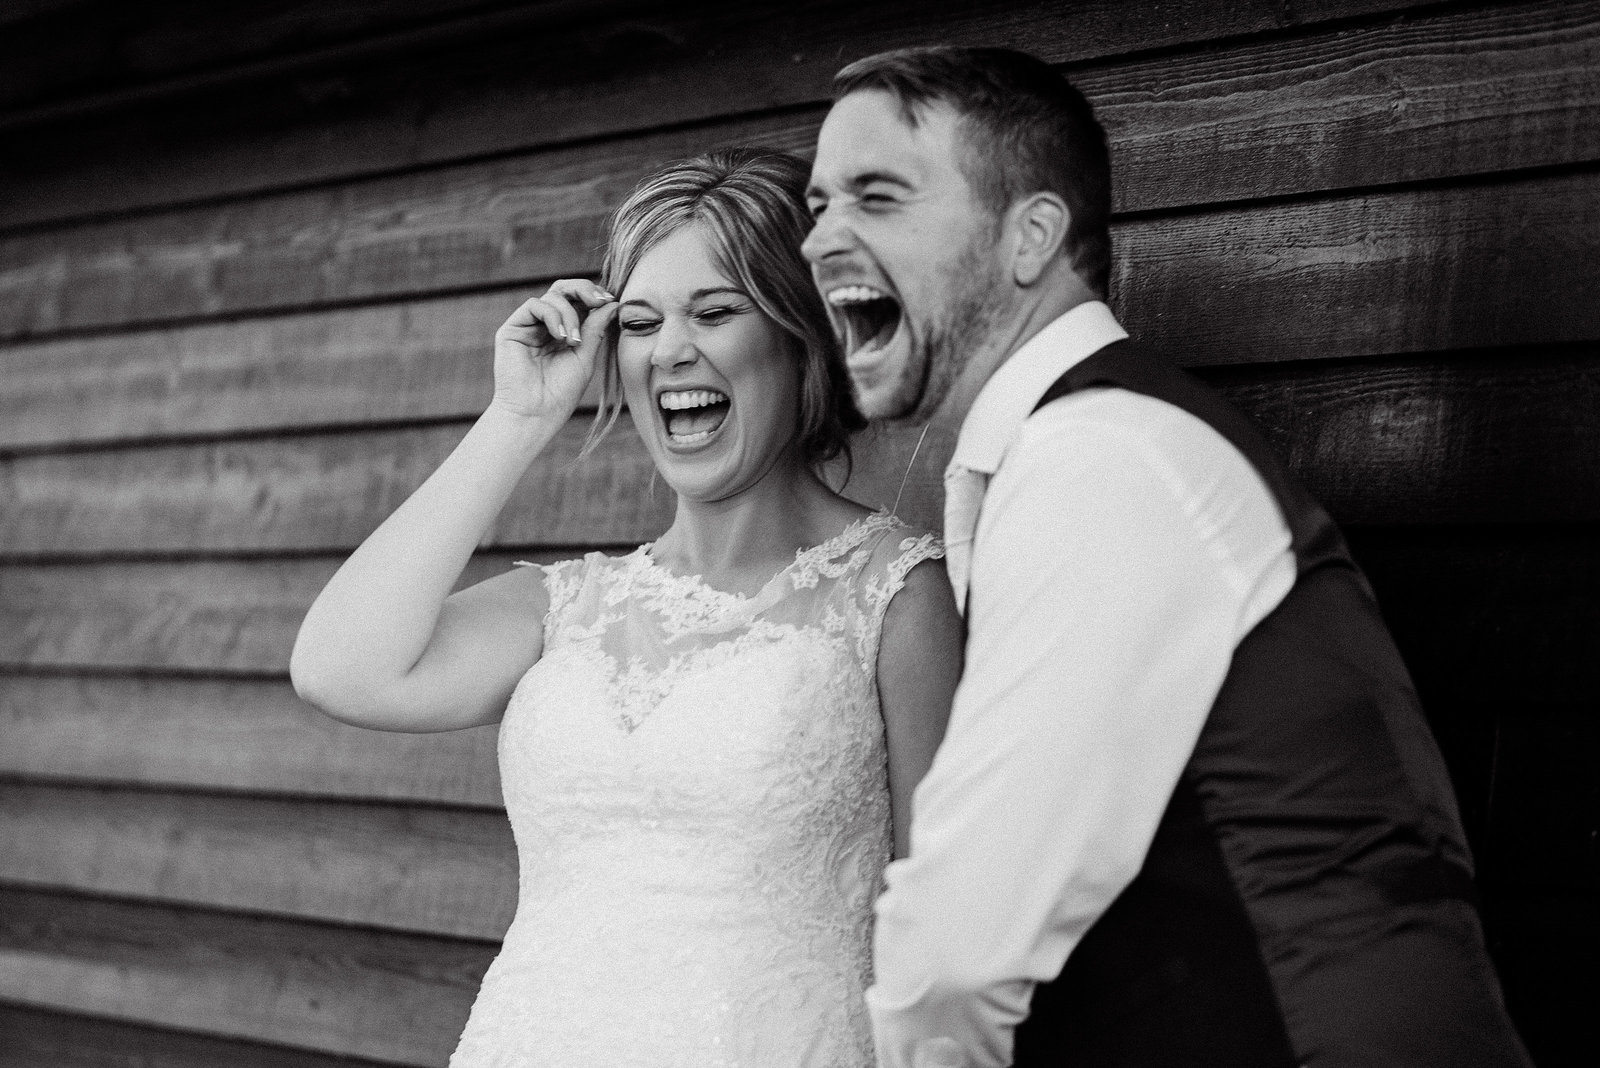 Bride and groom really being in the moment in hysterics against the fenced wooden panelled wall at Farbridge Wedding Barn in West Dean